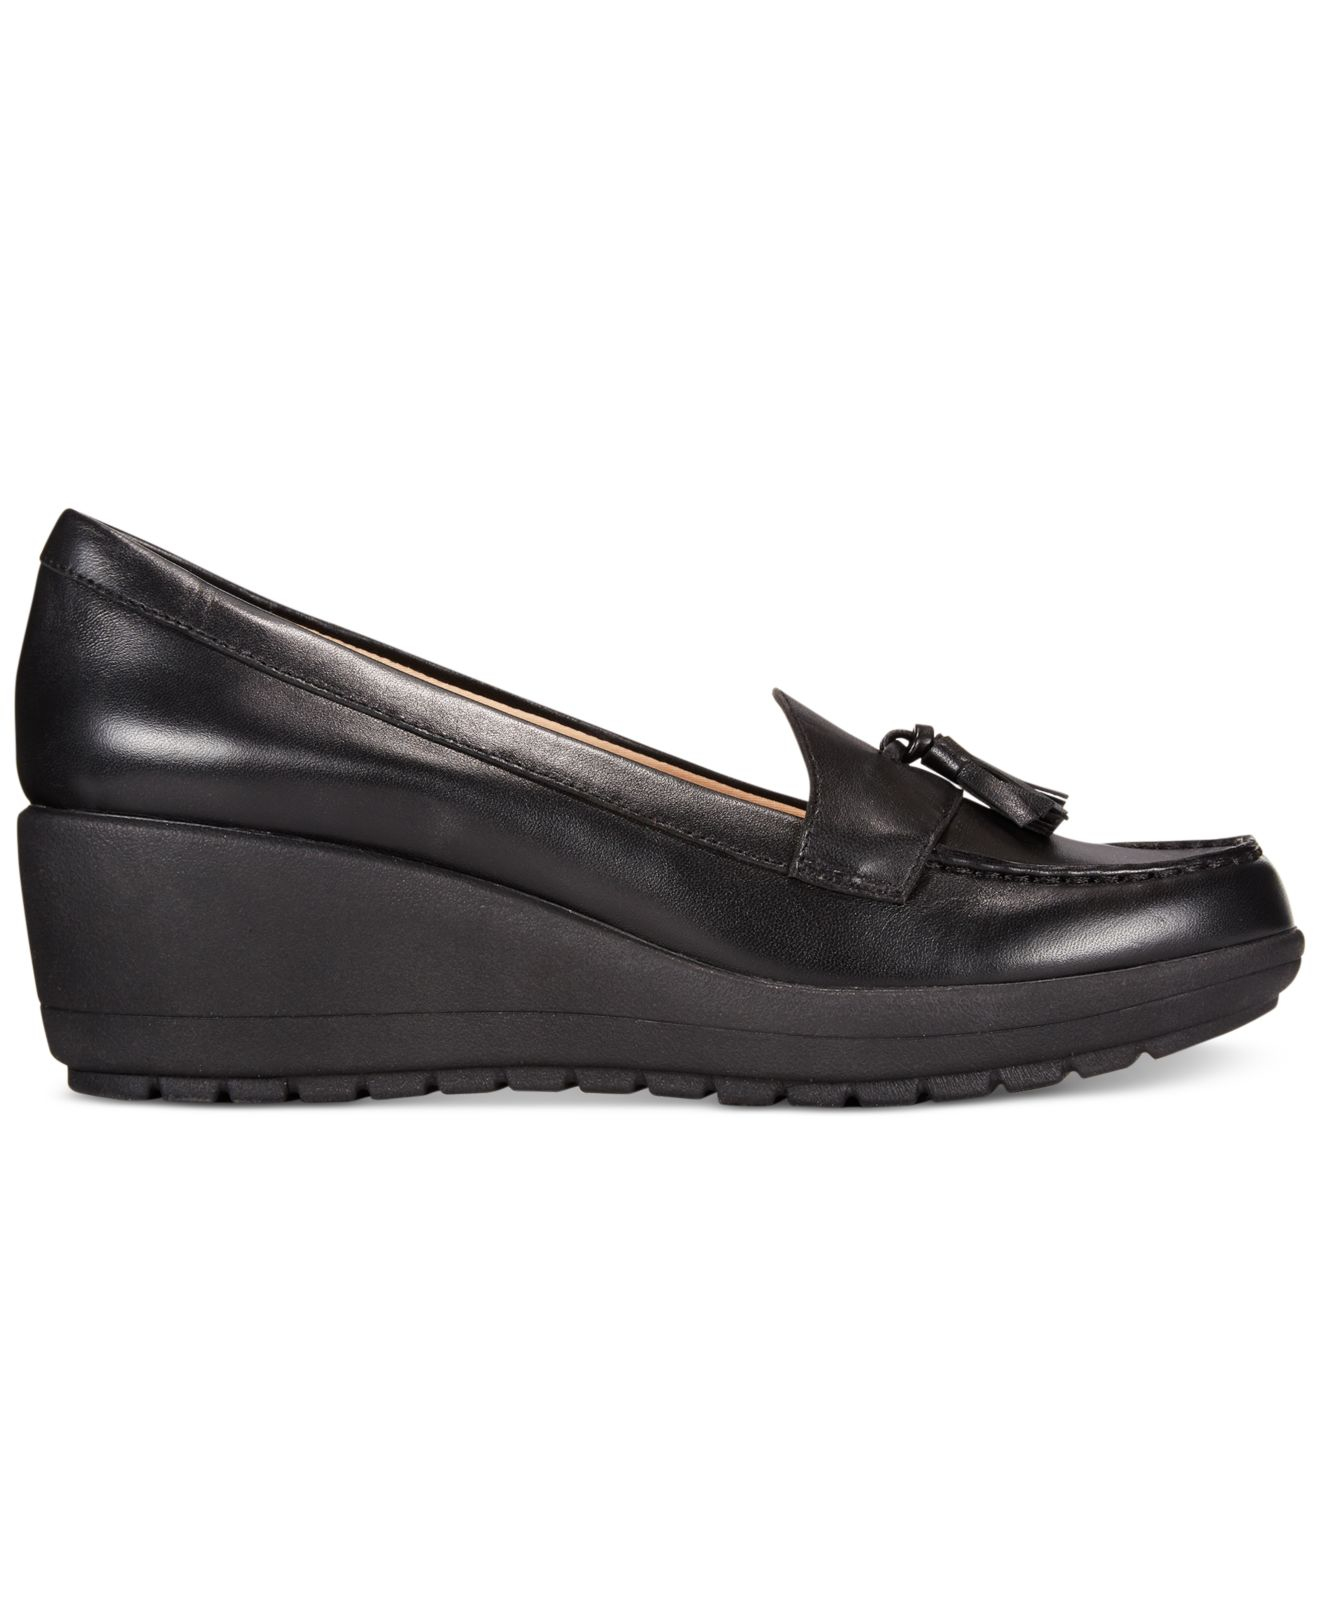 A foam wedge adds a dramatic lift to these polished leather See by Chloé loafers. Scalloped trim and piping trims the top line and tassels accent the vamp. Rubber sole.